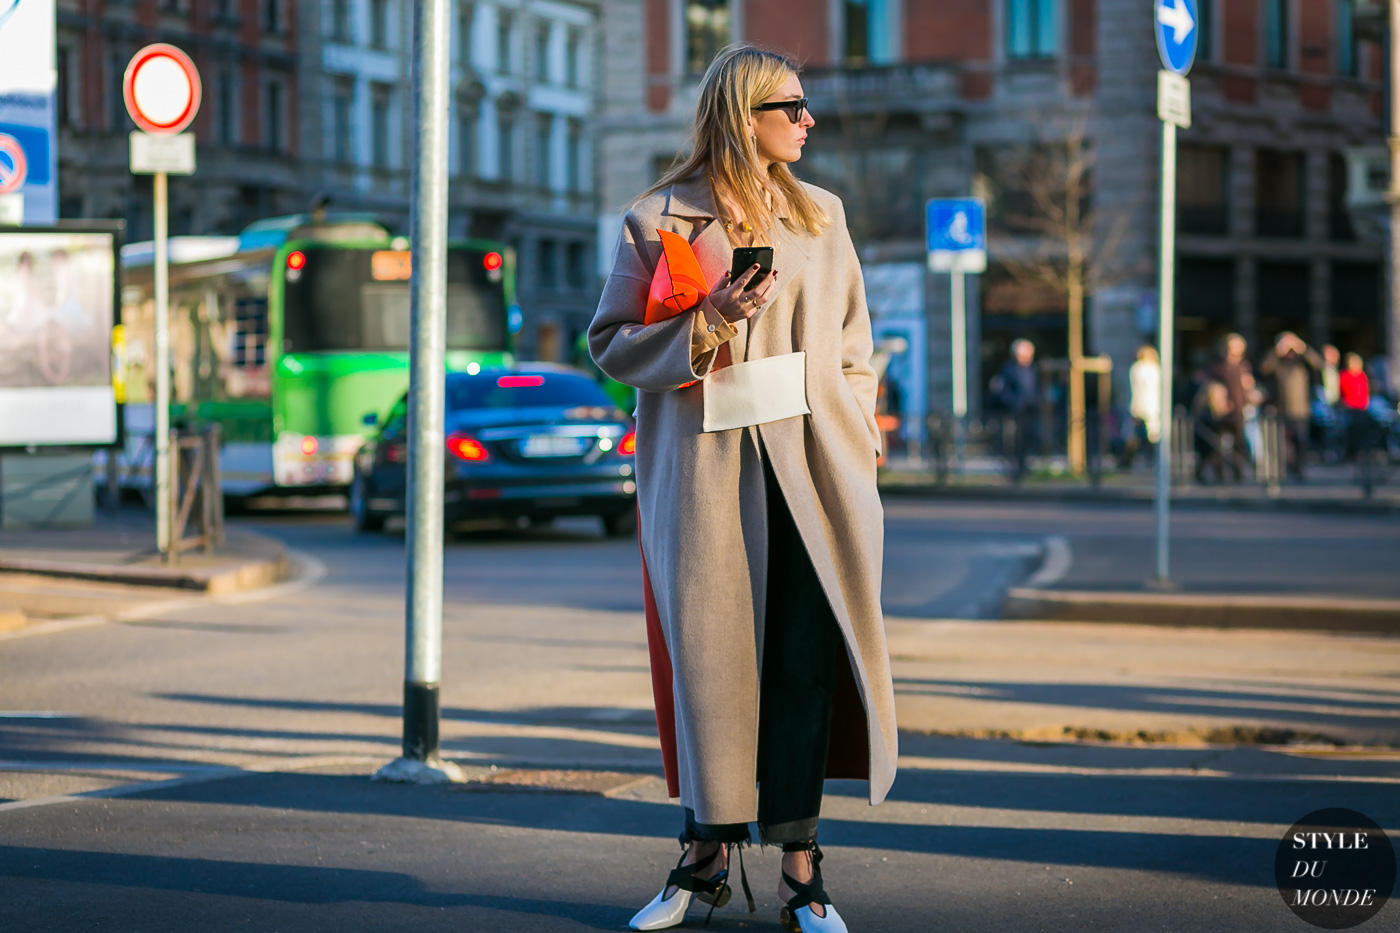 Camille Charriere by STYLEDUMONDE Street Style Fashion Photography0E2A3389